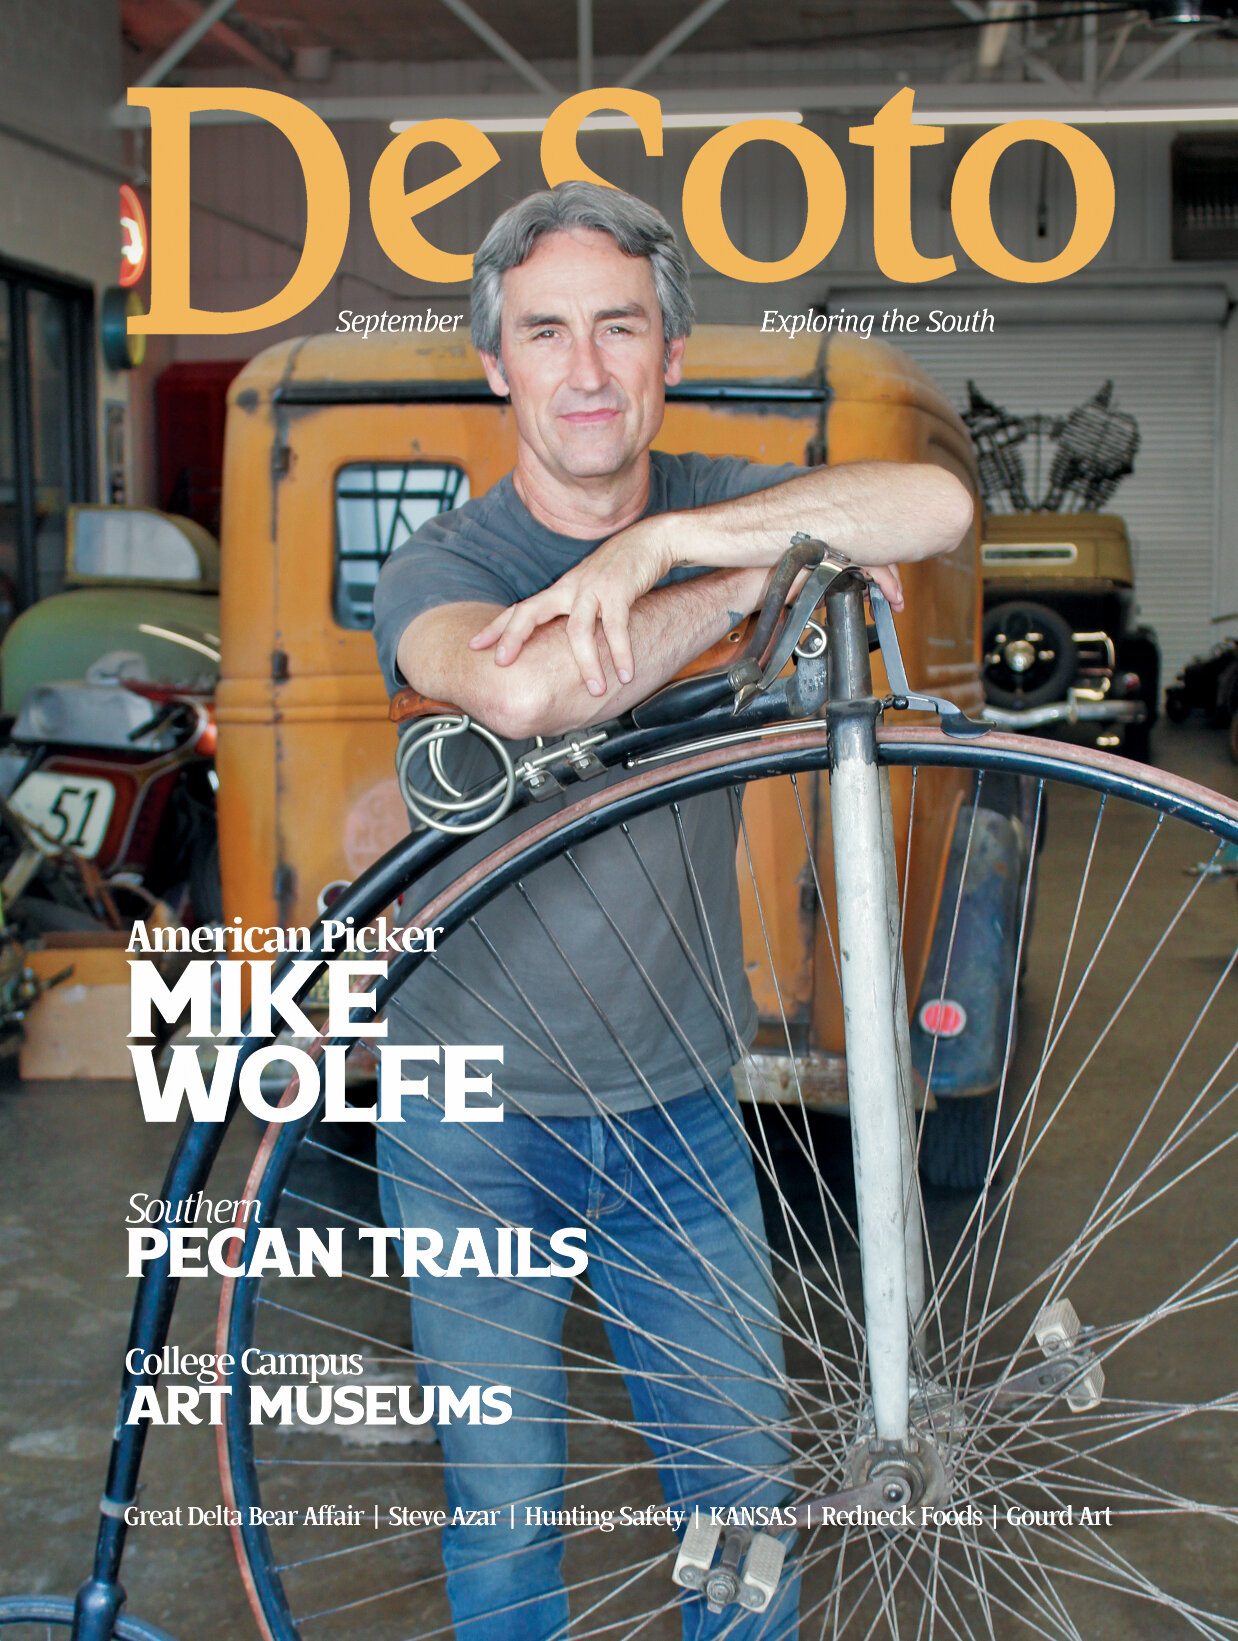 Mike Wolfe Cover - DeSoto Magazine.jpg